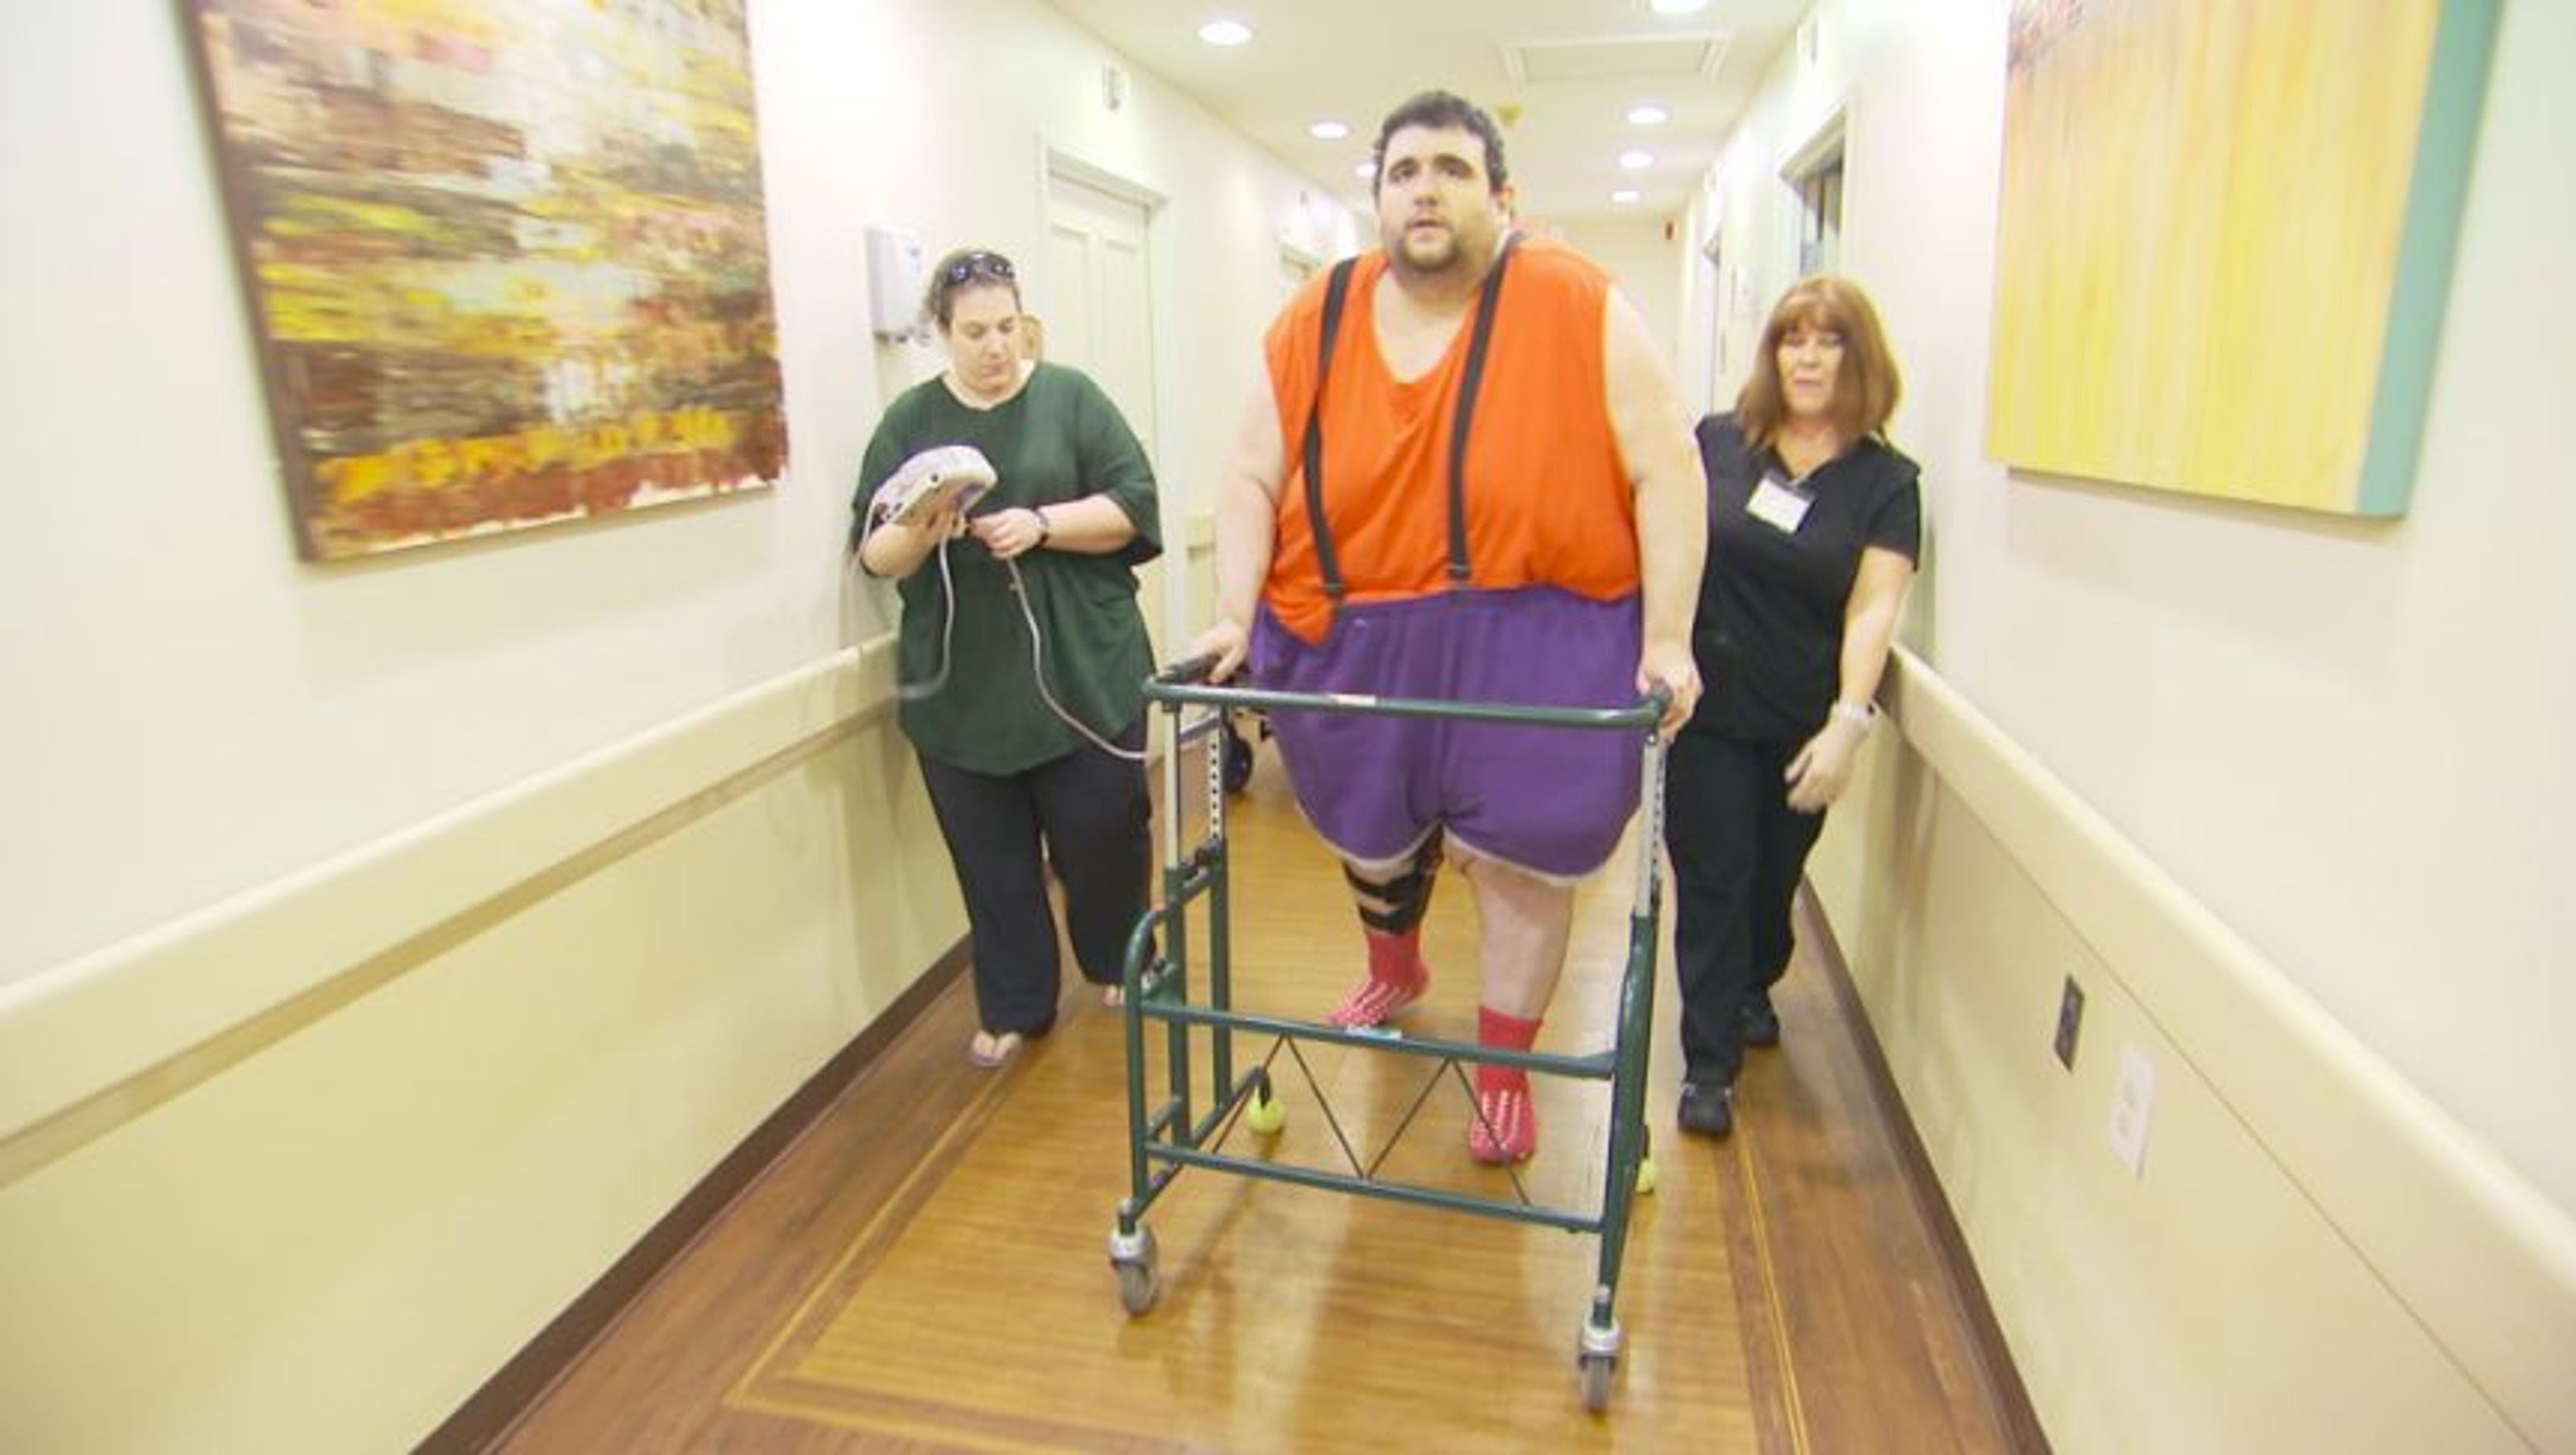 Robert Buchel Of Forked River Dies While Filming Tlc S My 600 Lb Life